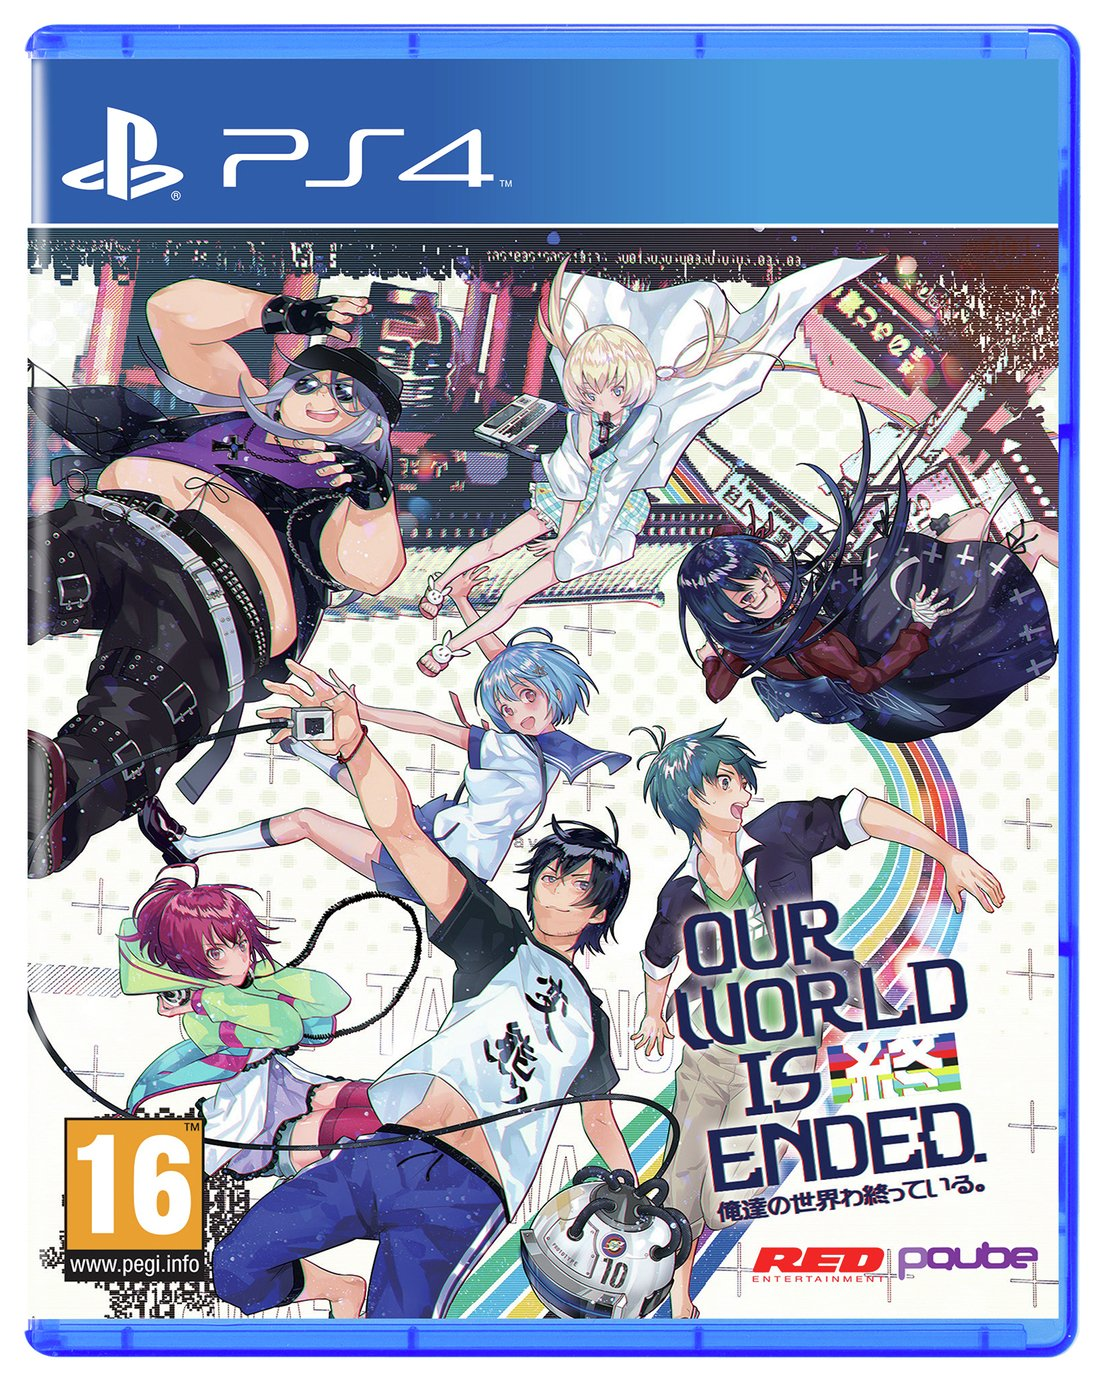 Our World is Ended: Day One Edition PS4 Game